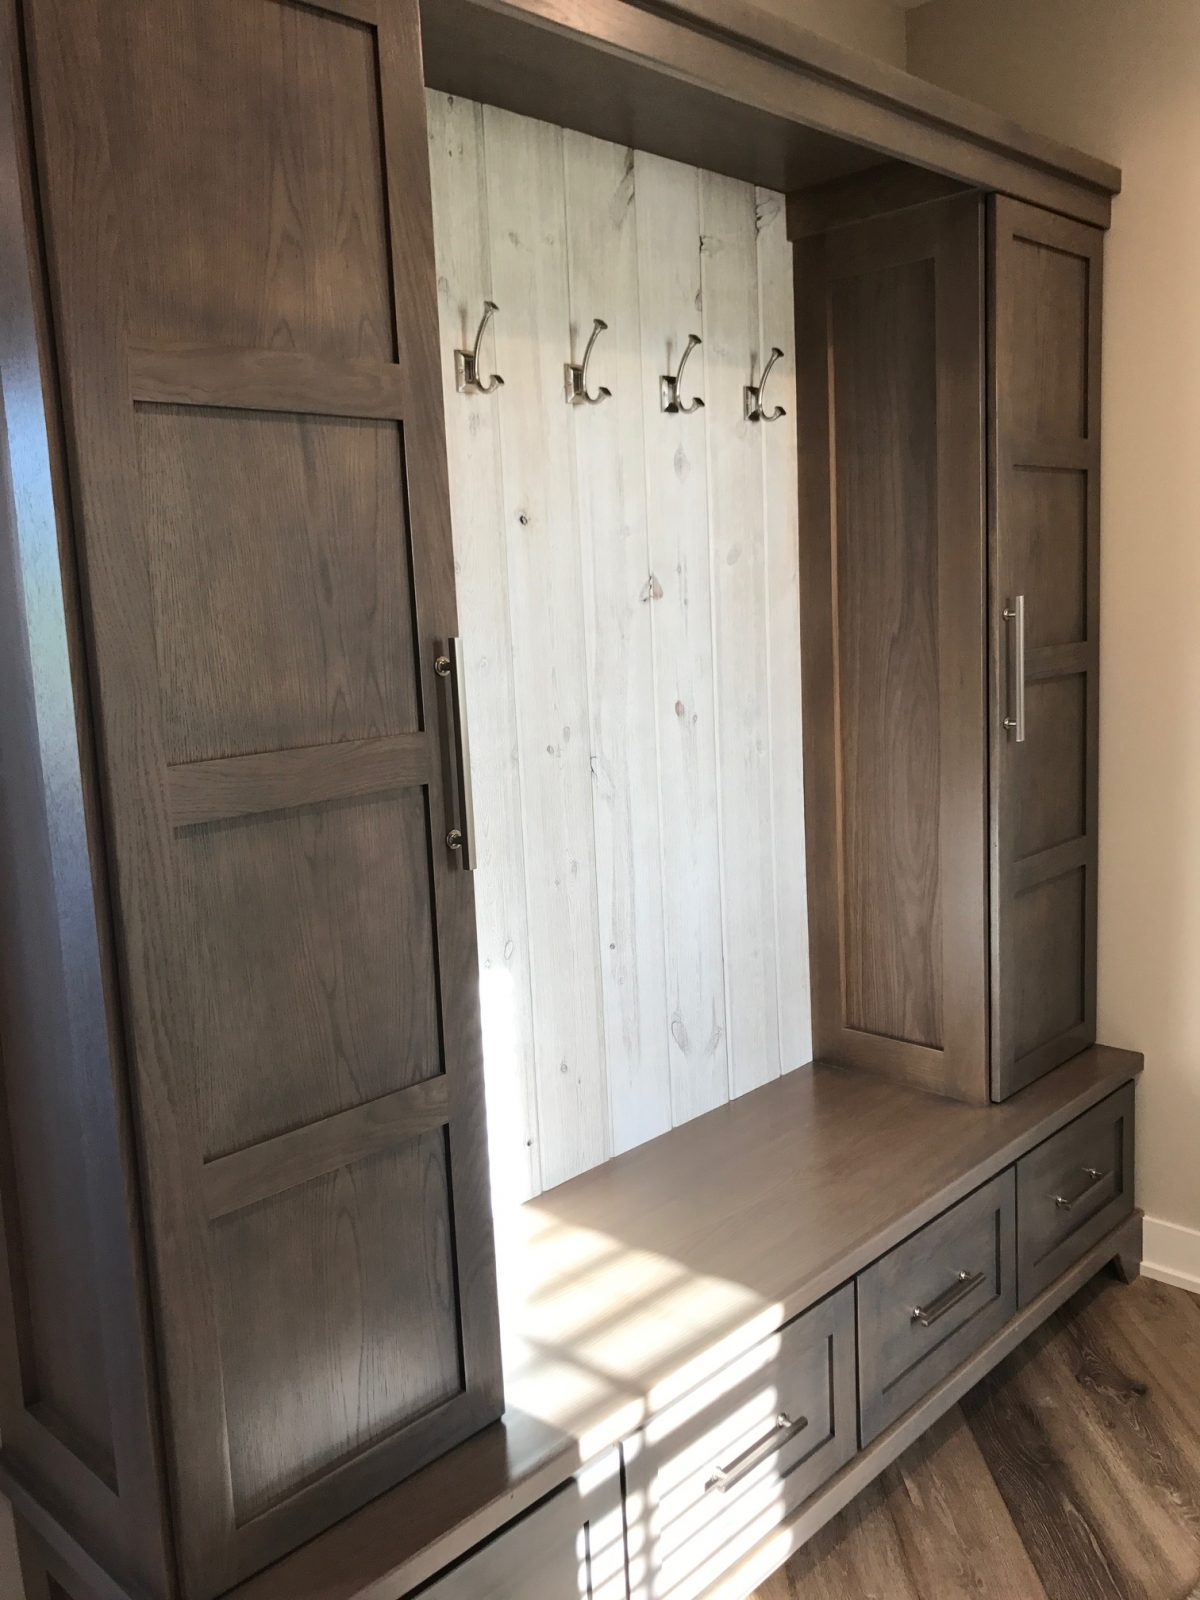 Mudroom Accent Wall using Great American Spaces Easy BarnWood in Traditional White